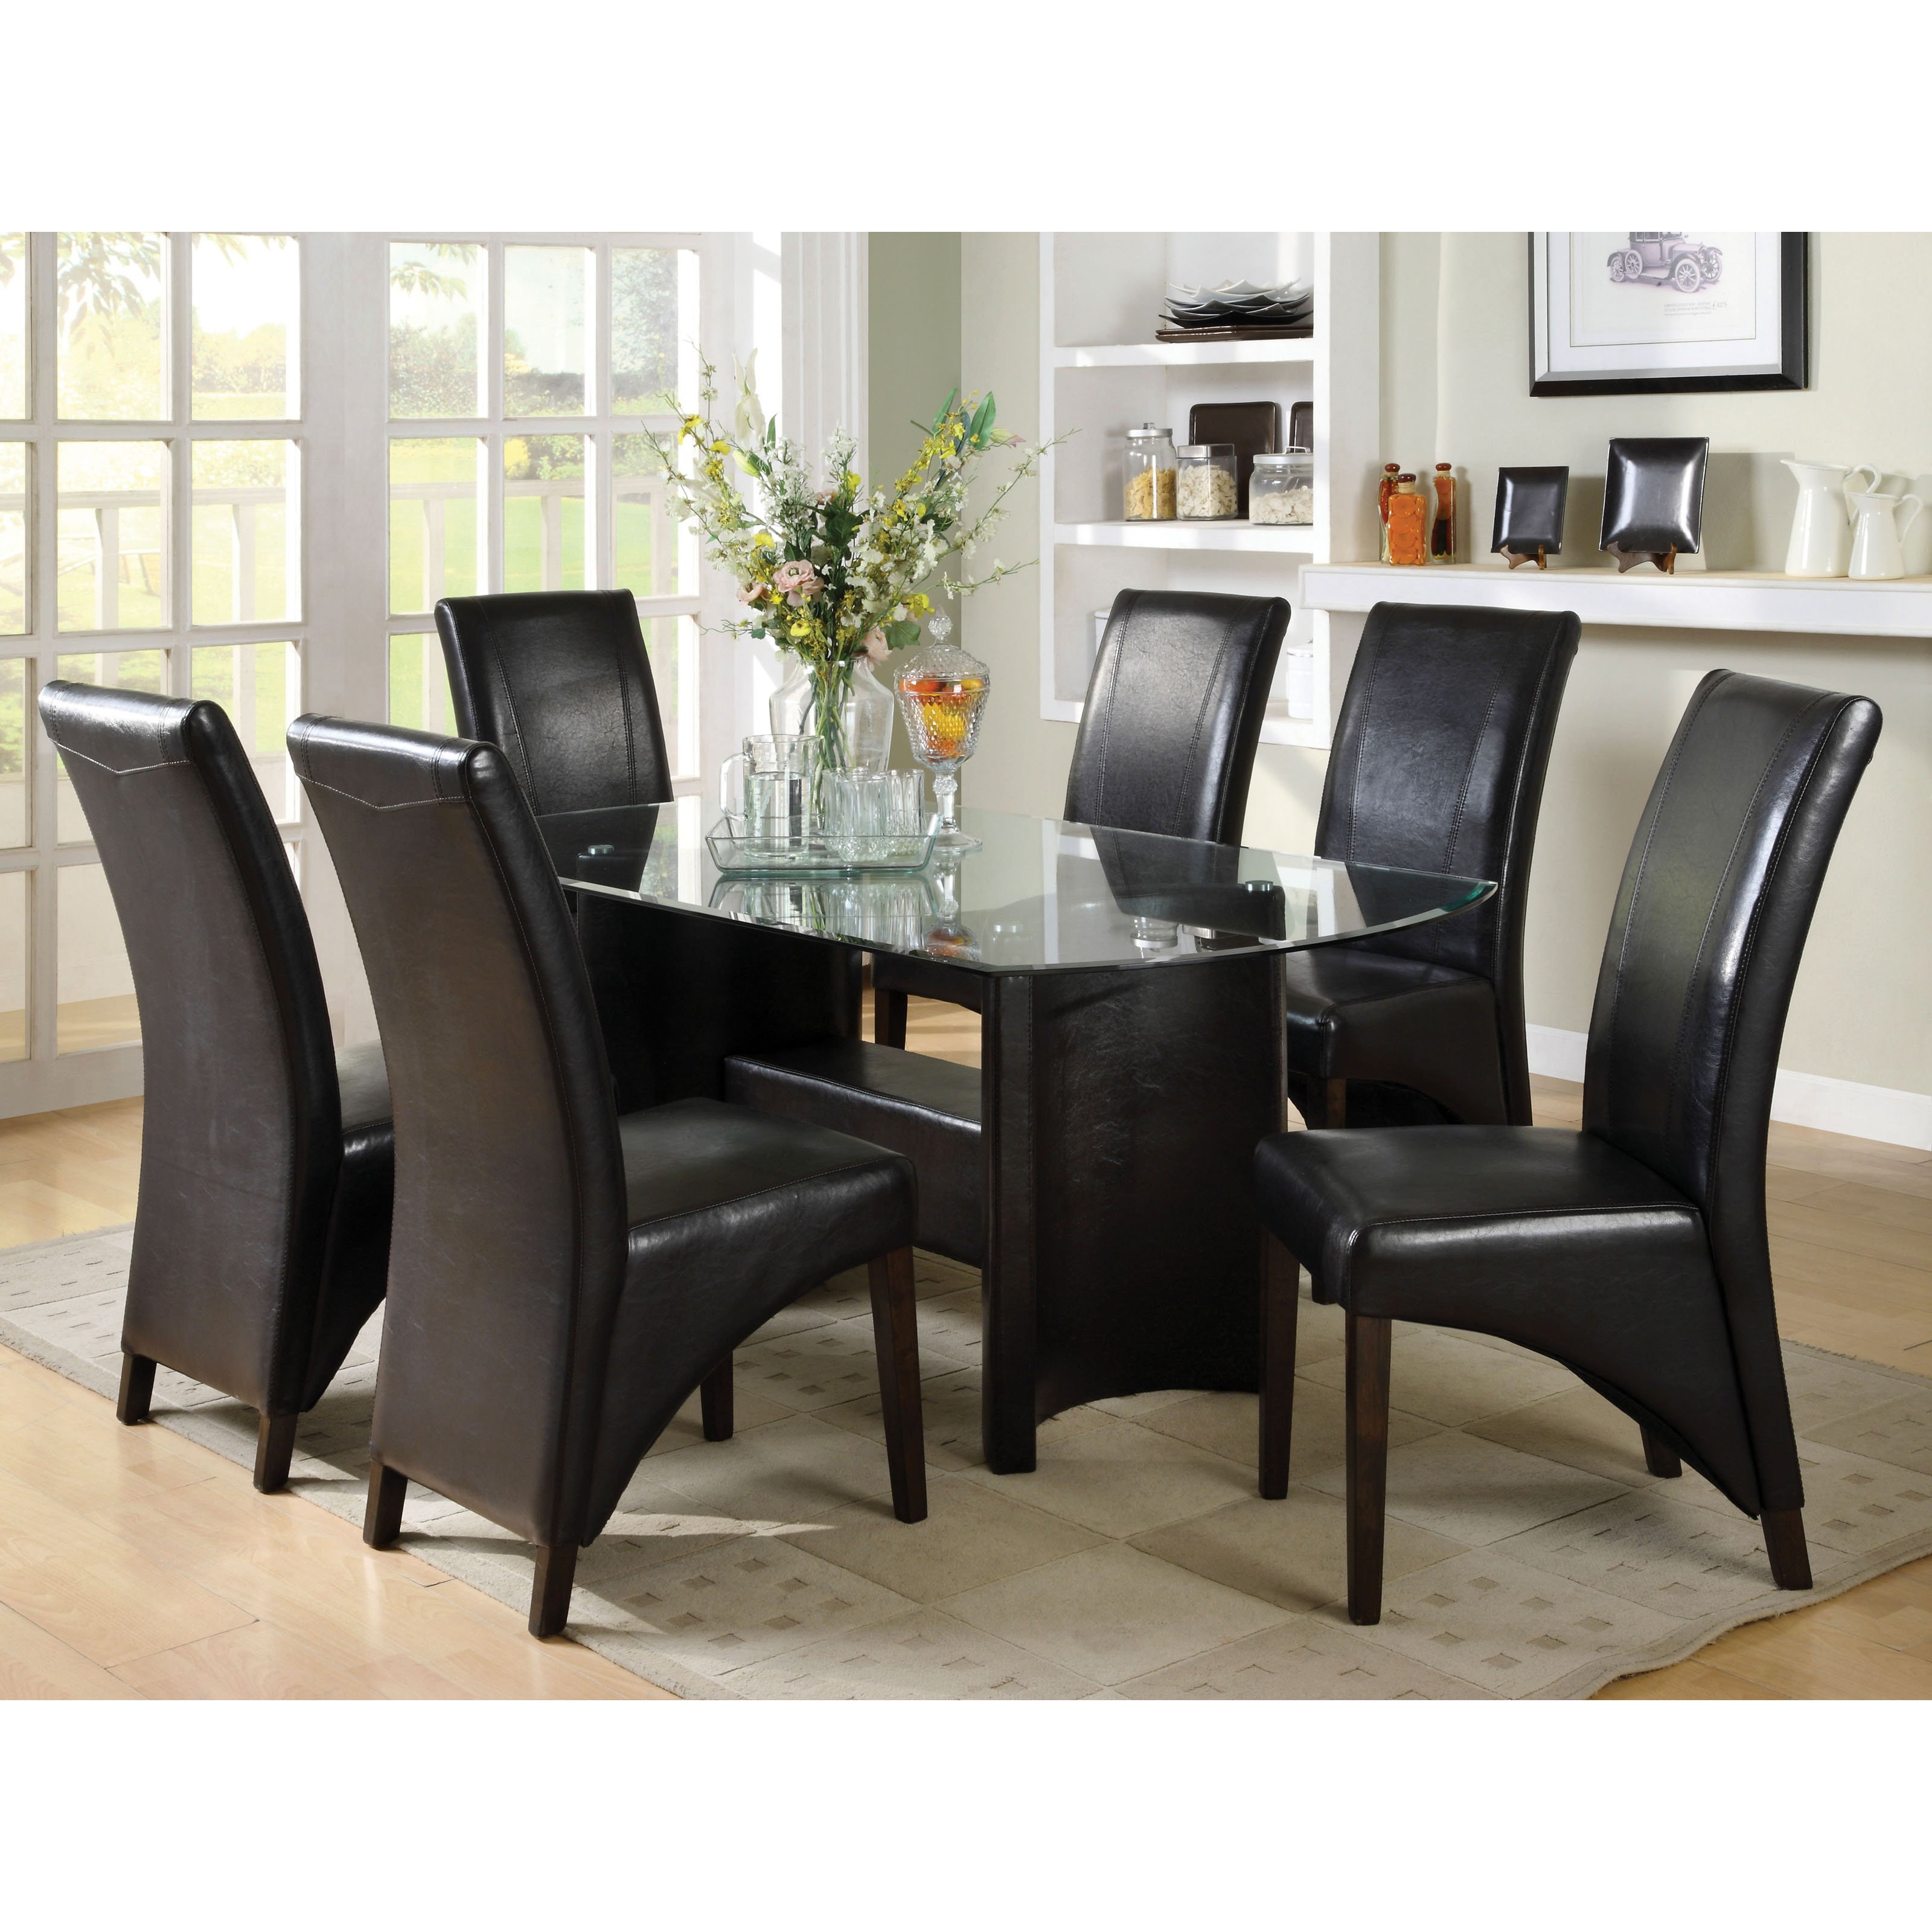 Pub Style Dining Sets. Cheap Bistro Table Set Patio Furniture ...